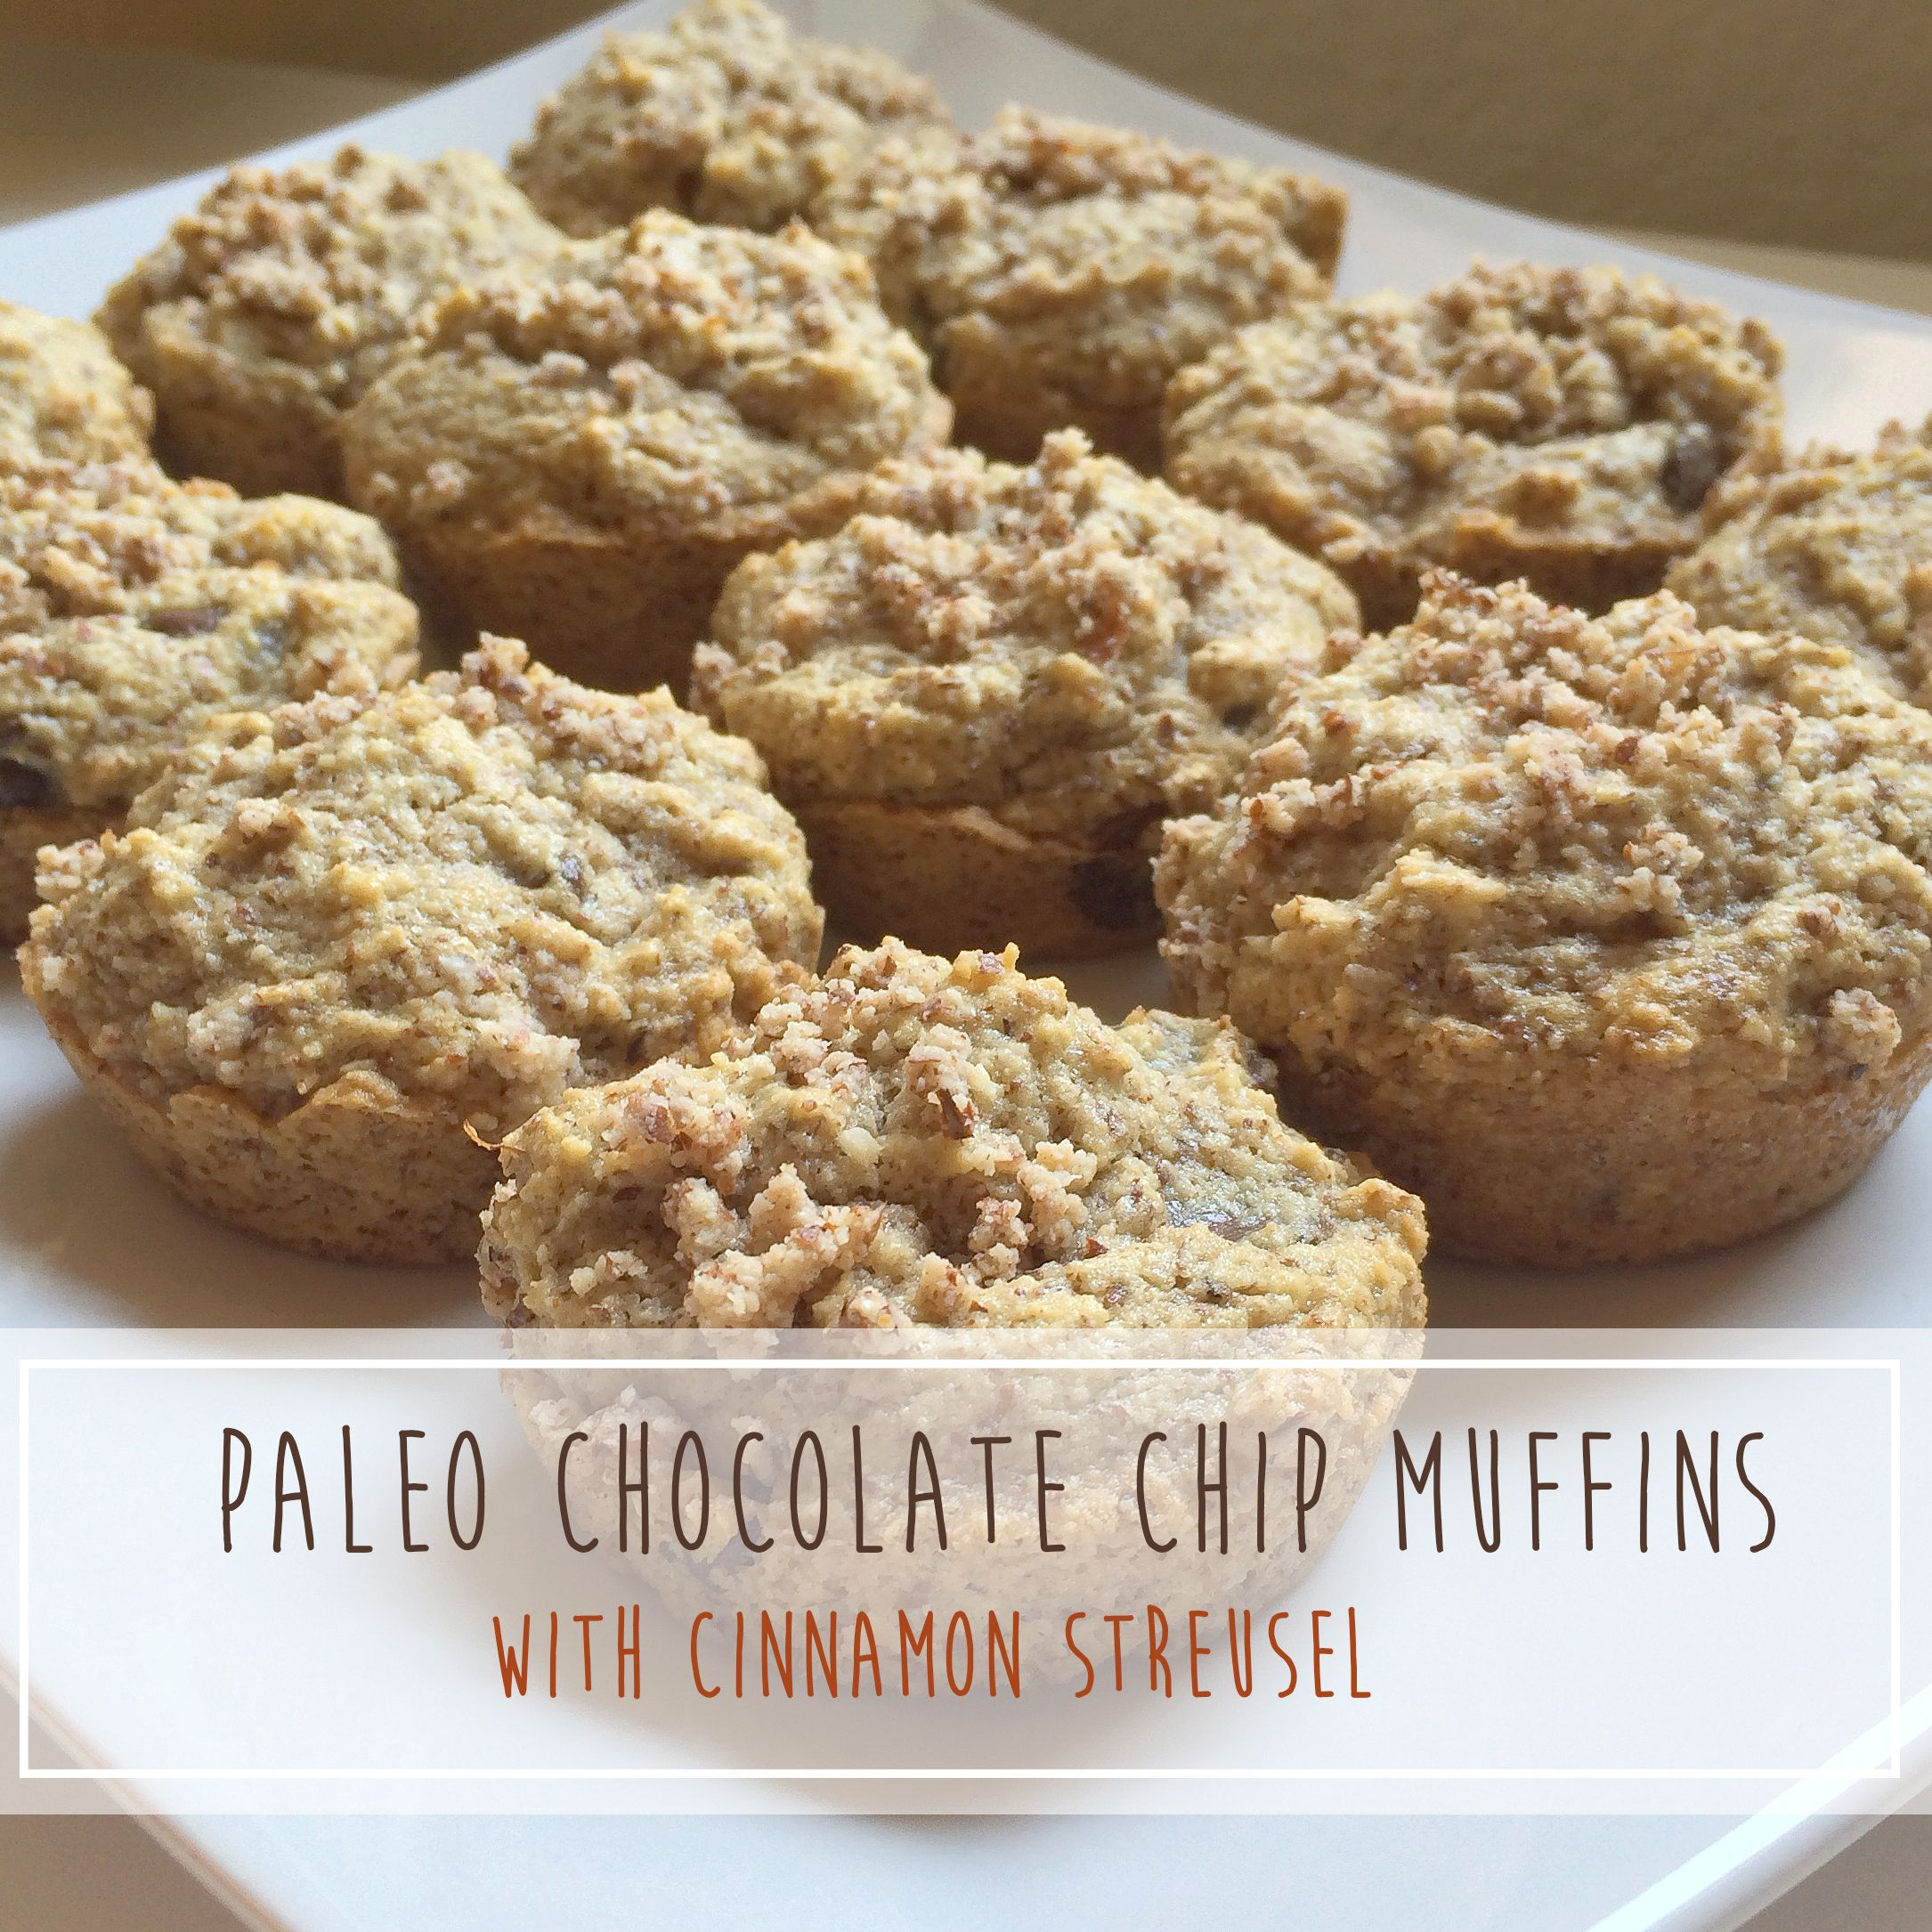 Paleo Chocolate Chip Muffins with Cinnamon Streusel